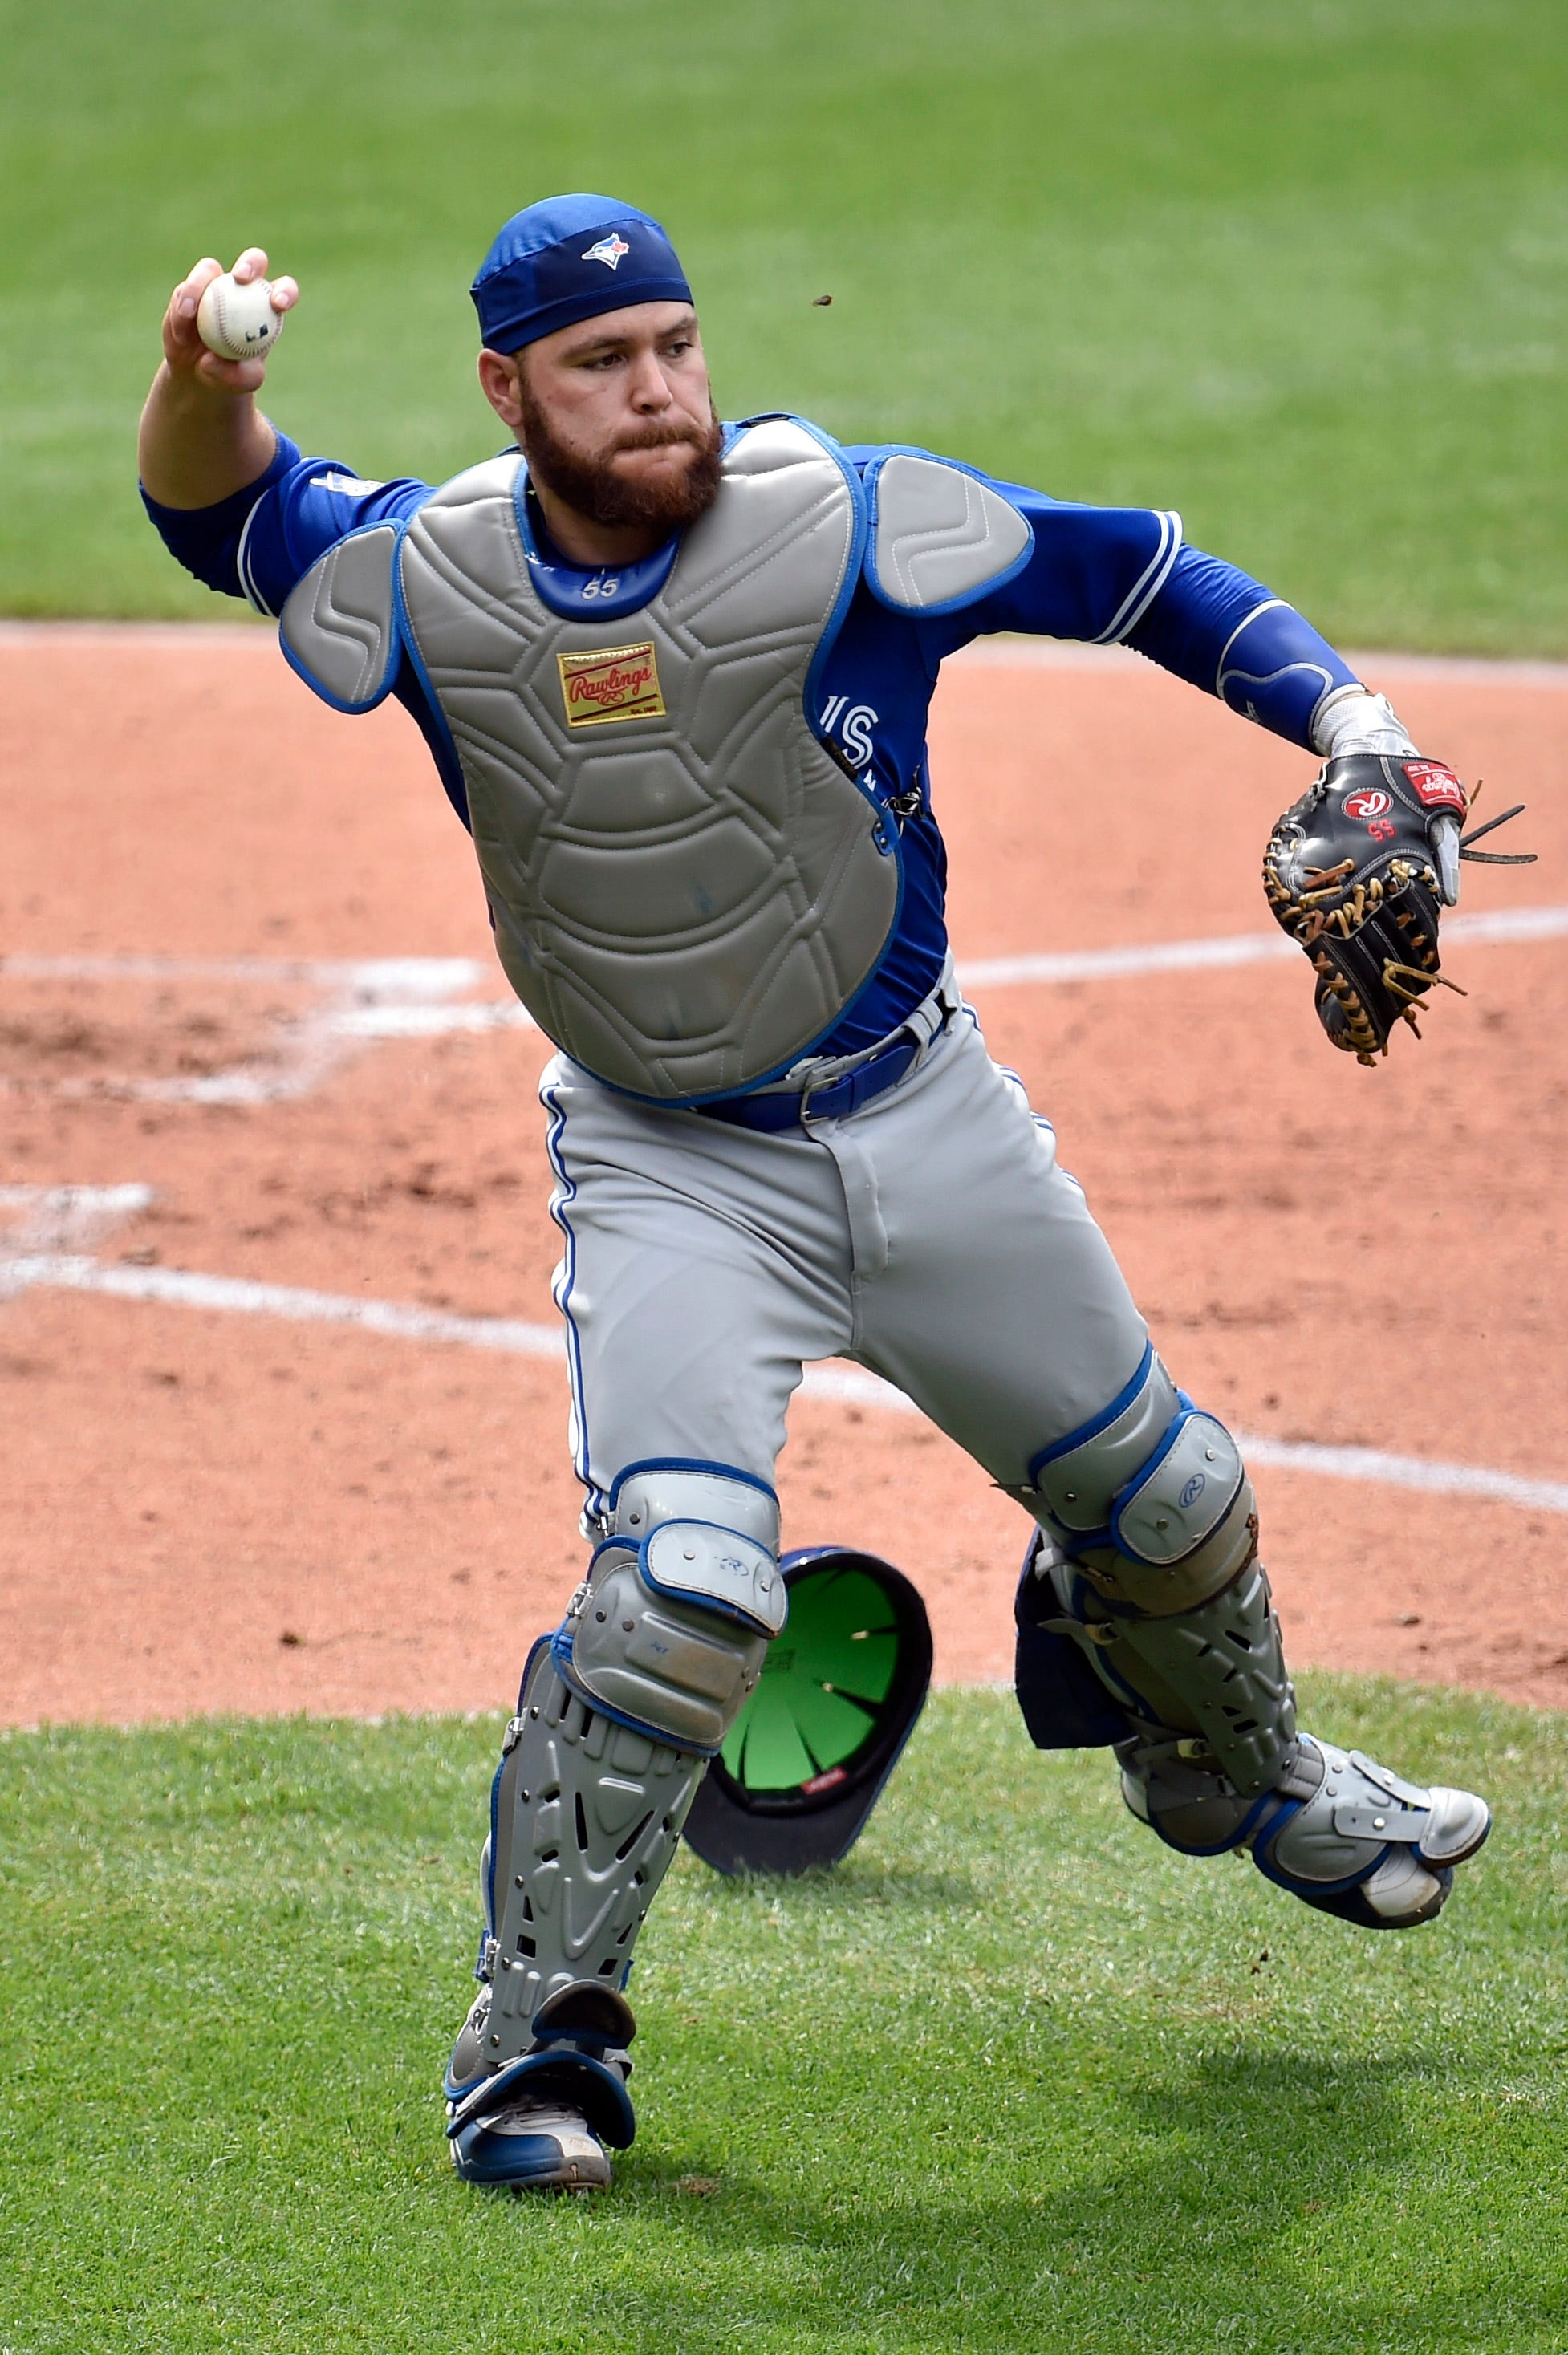 Blue Jays catcher Russell Martin traded to Dodgers